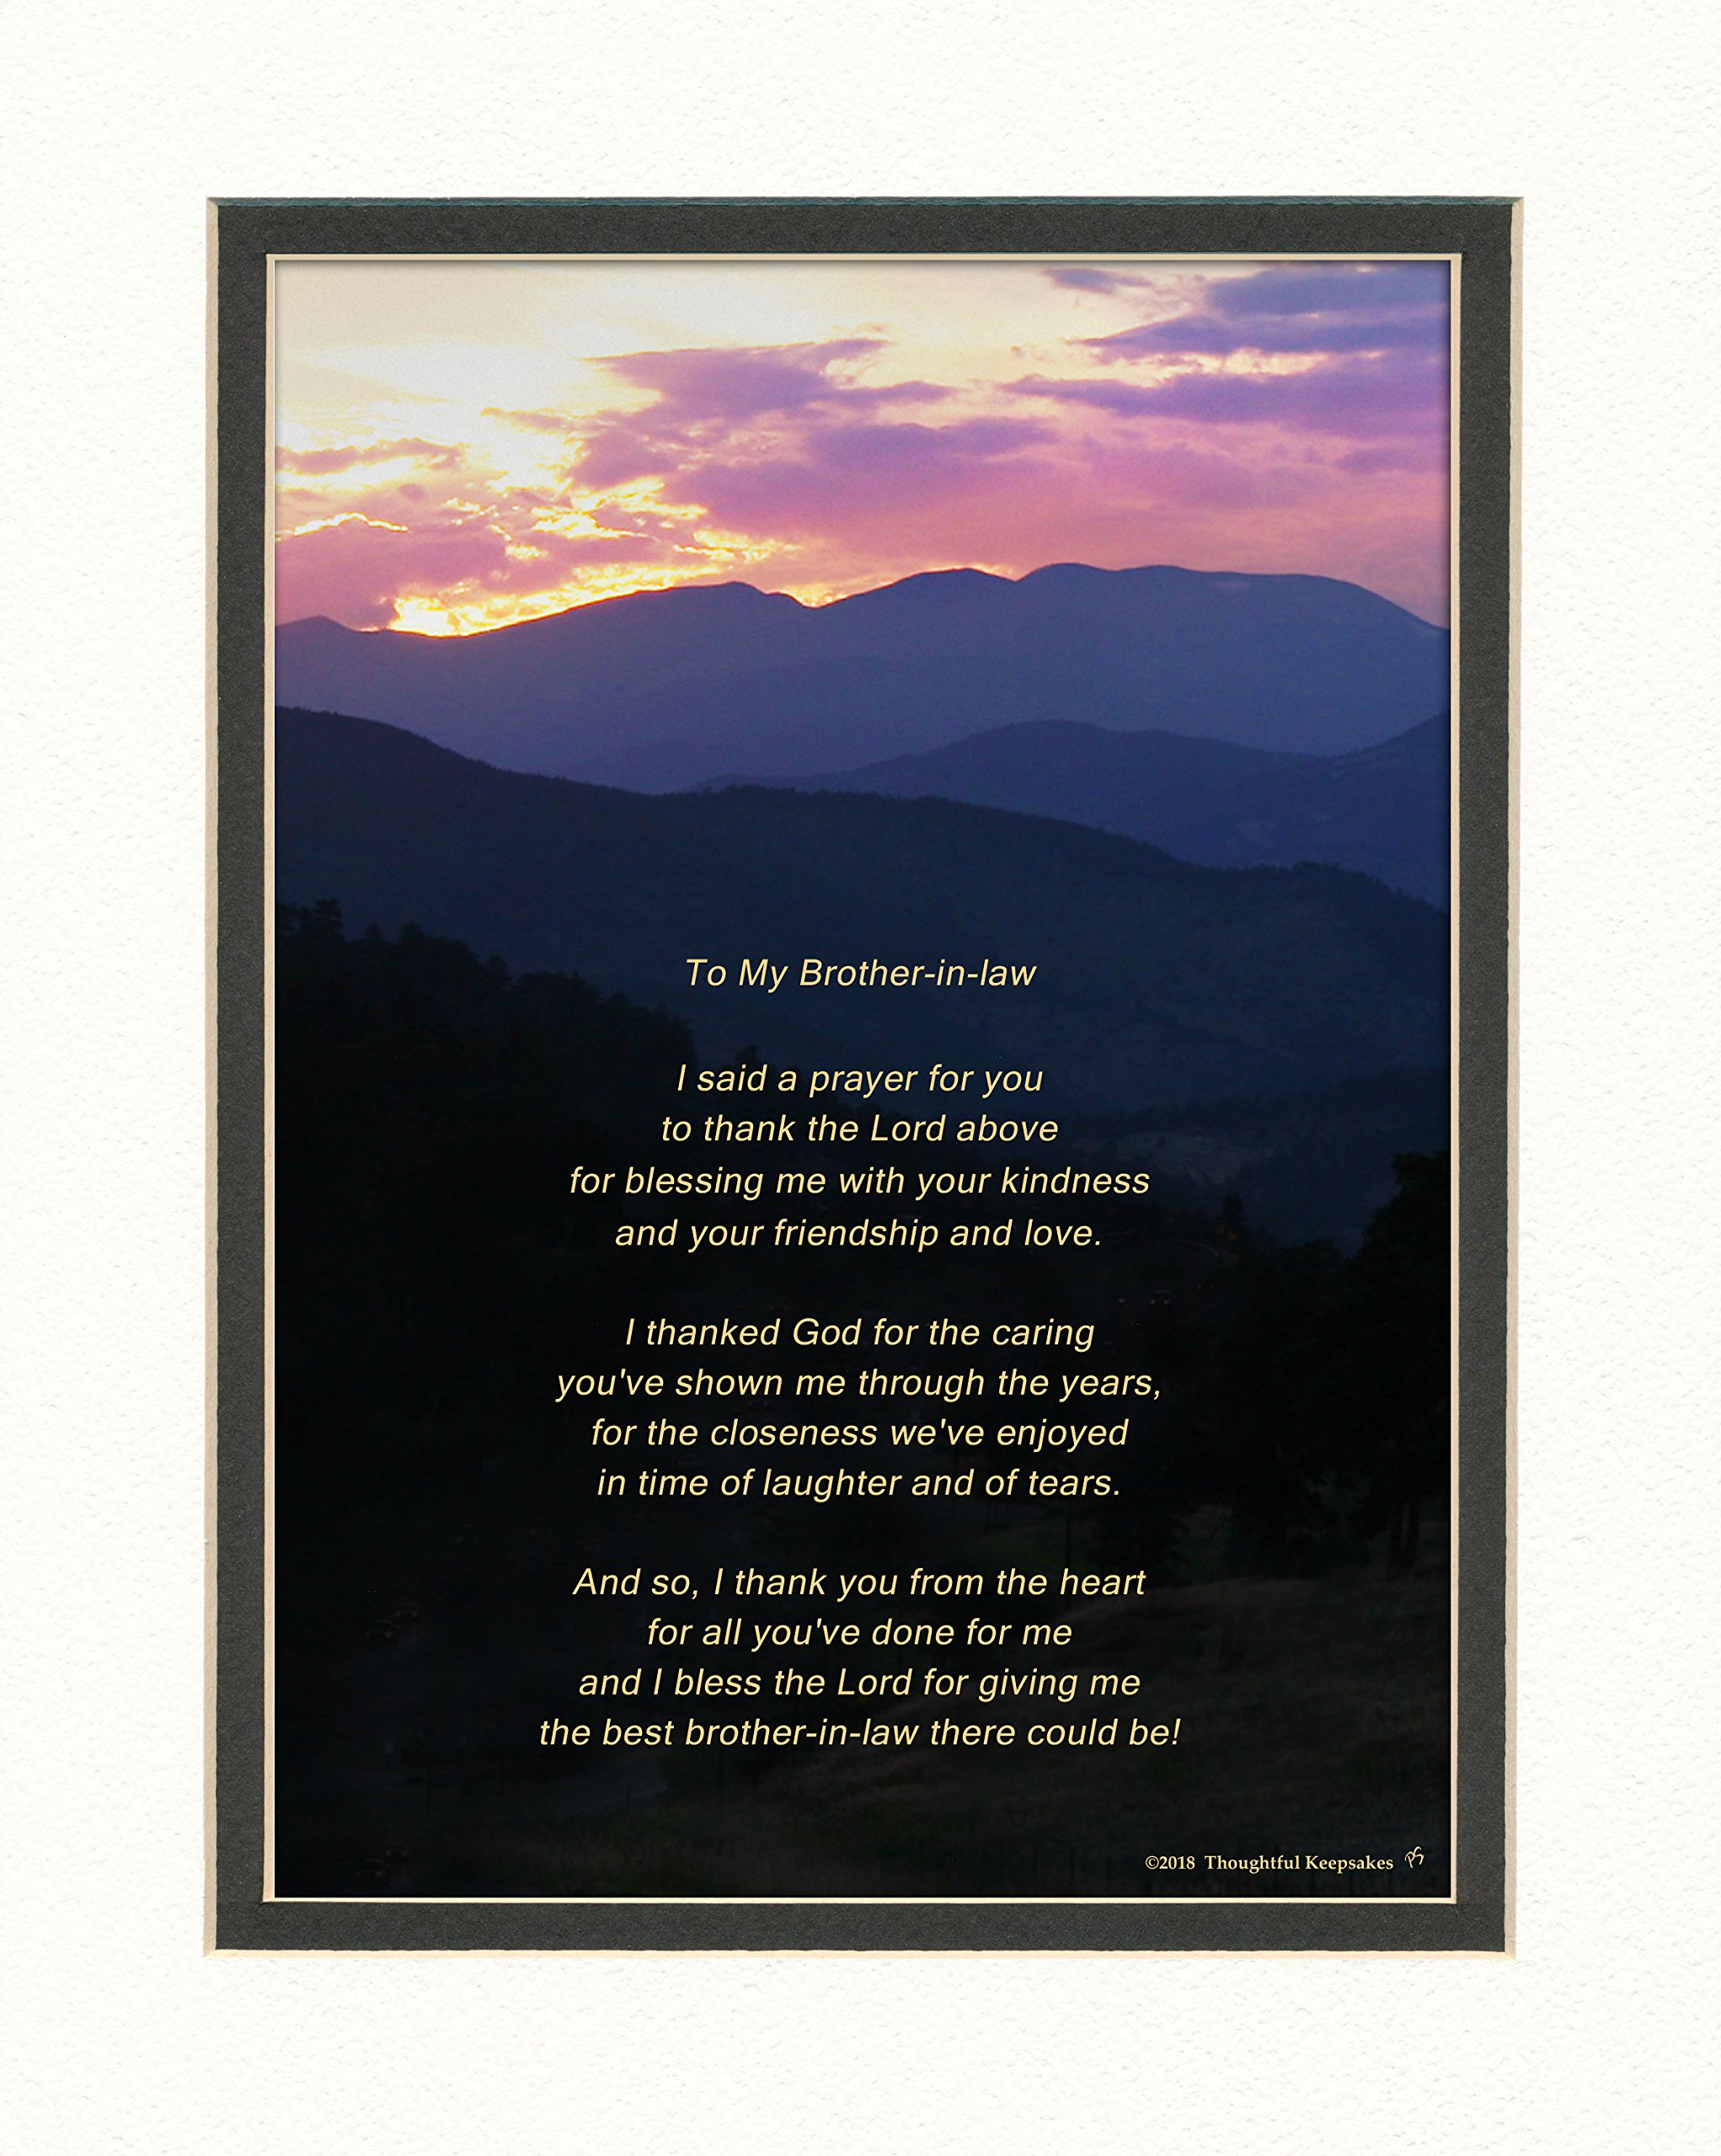 Brother-in-Law Gift with ''Thank You Prayer for Best Brother in law'' Poem. Mt Sunset Photo, 8x10 Double Matted. Special Birthday or Christmas Gift for Brother-in-Law.